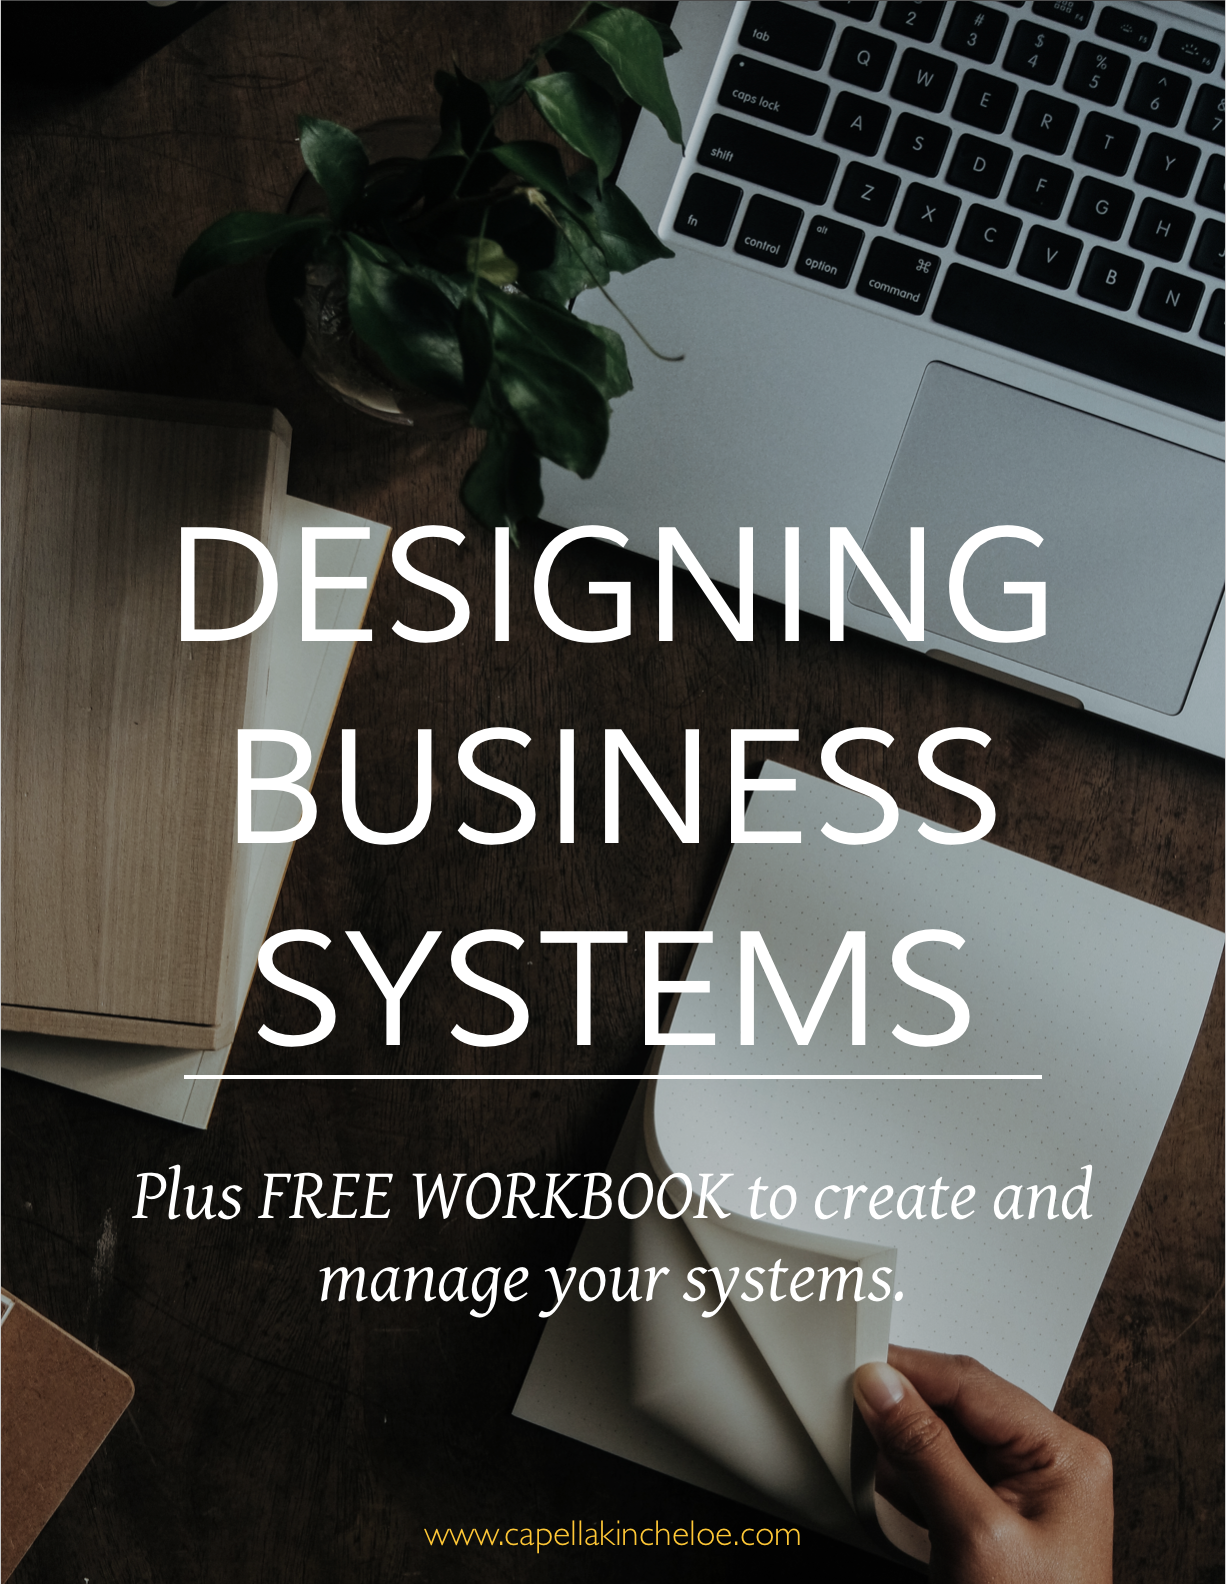 Business systems make your business run better and more efficiently, saving you time and money. Learn how to create systems that are tailored for your business with this free workbook.